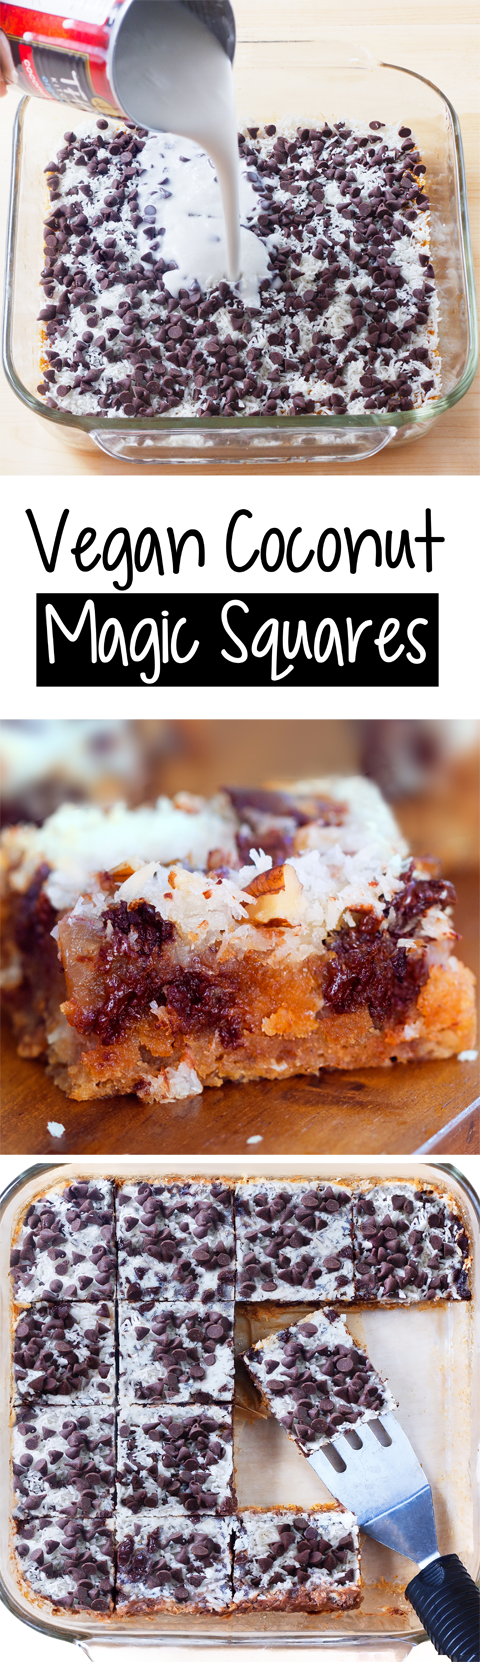 Vegan Coconut Magic Squares (7 Layer Bars) Recipe